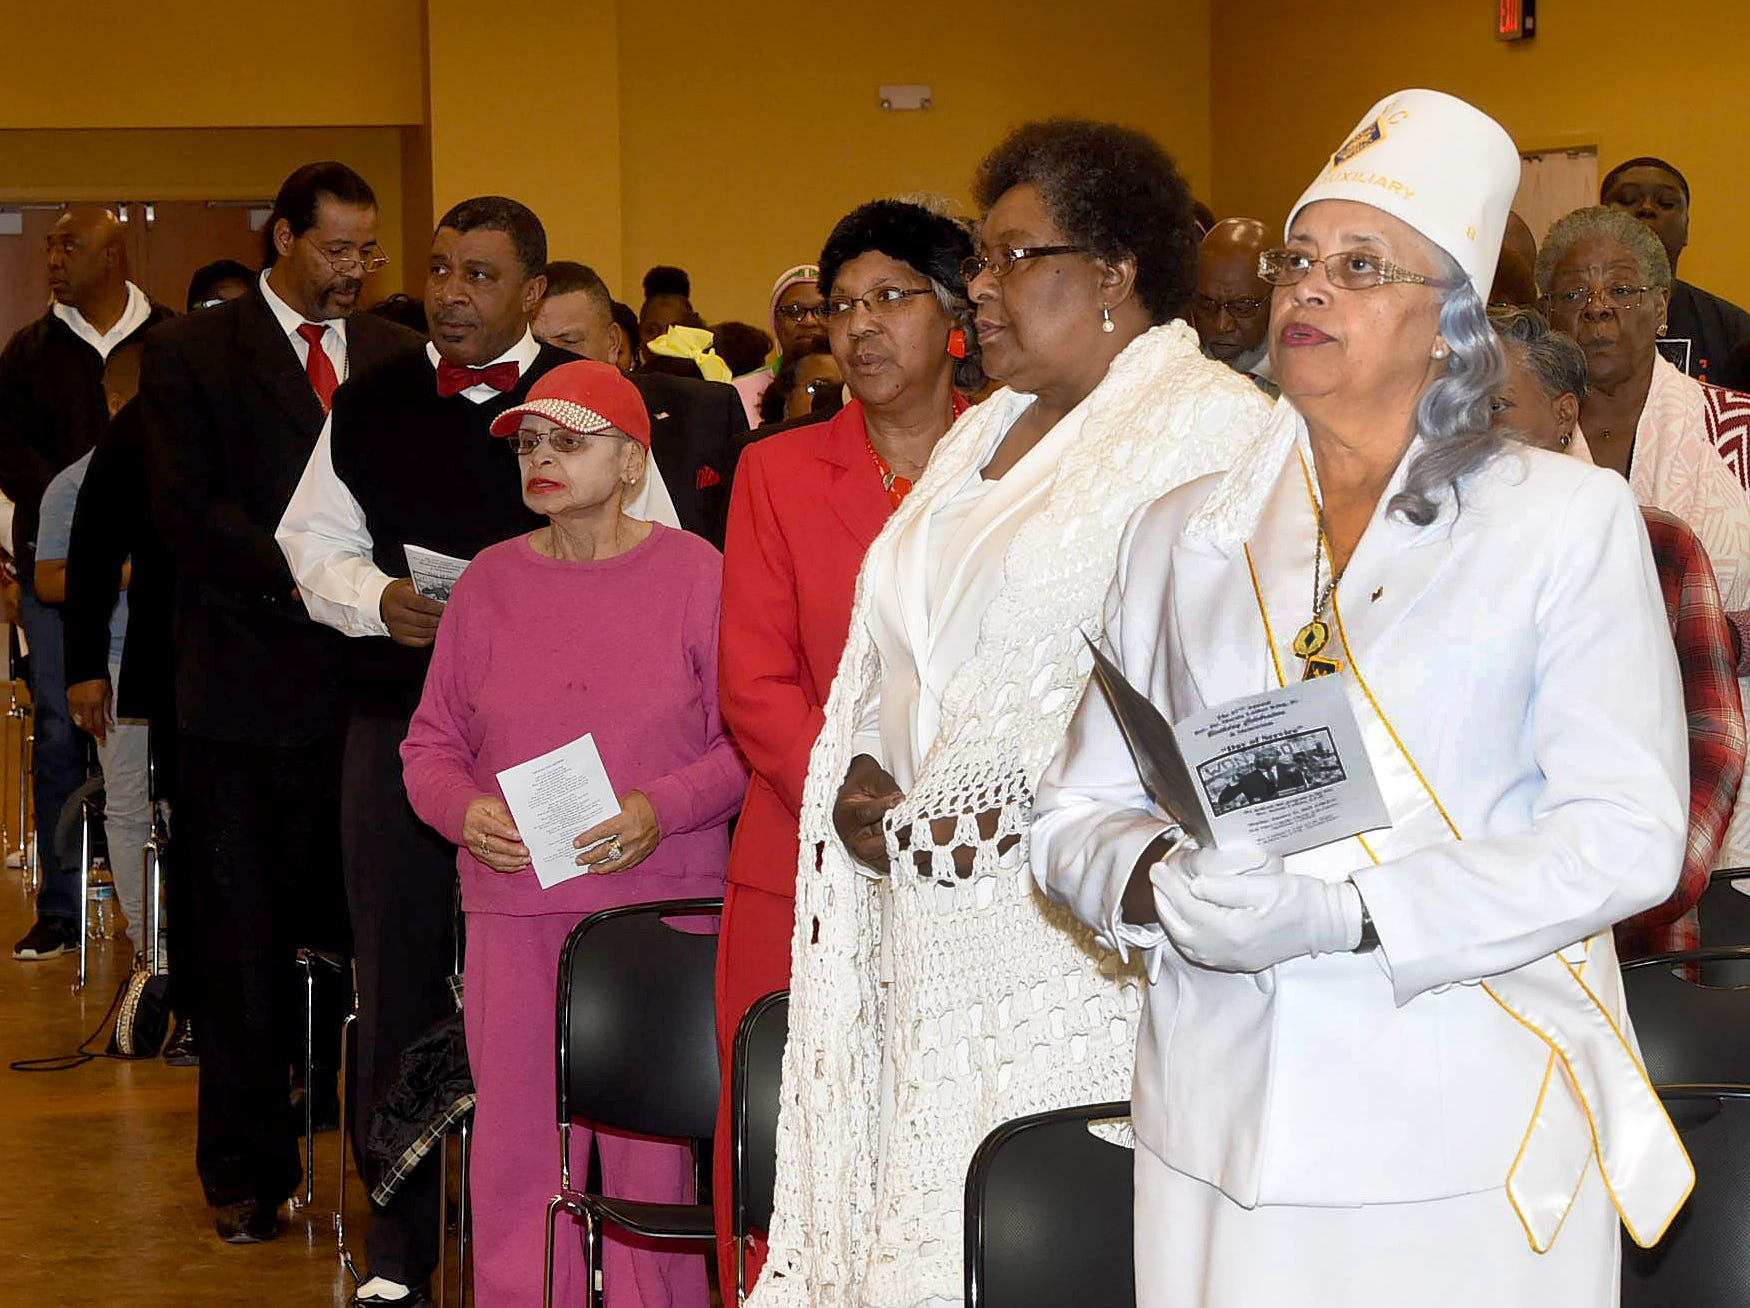 Opelousas residents celebrate the Dr. Martin Luther King, Jr. birthday and memoriam